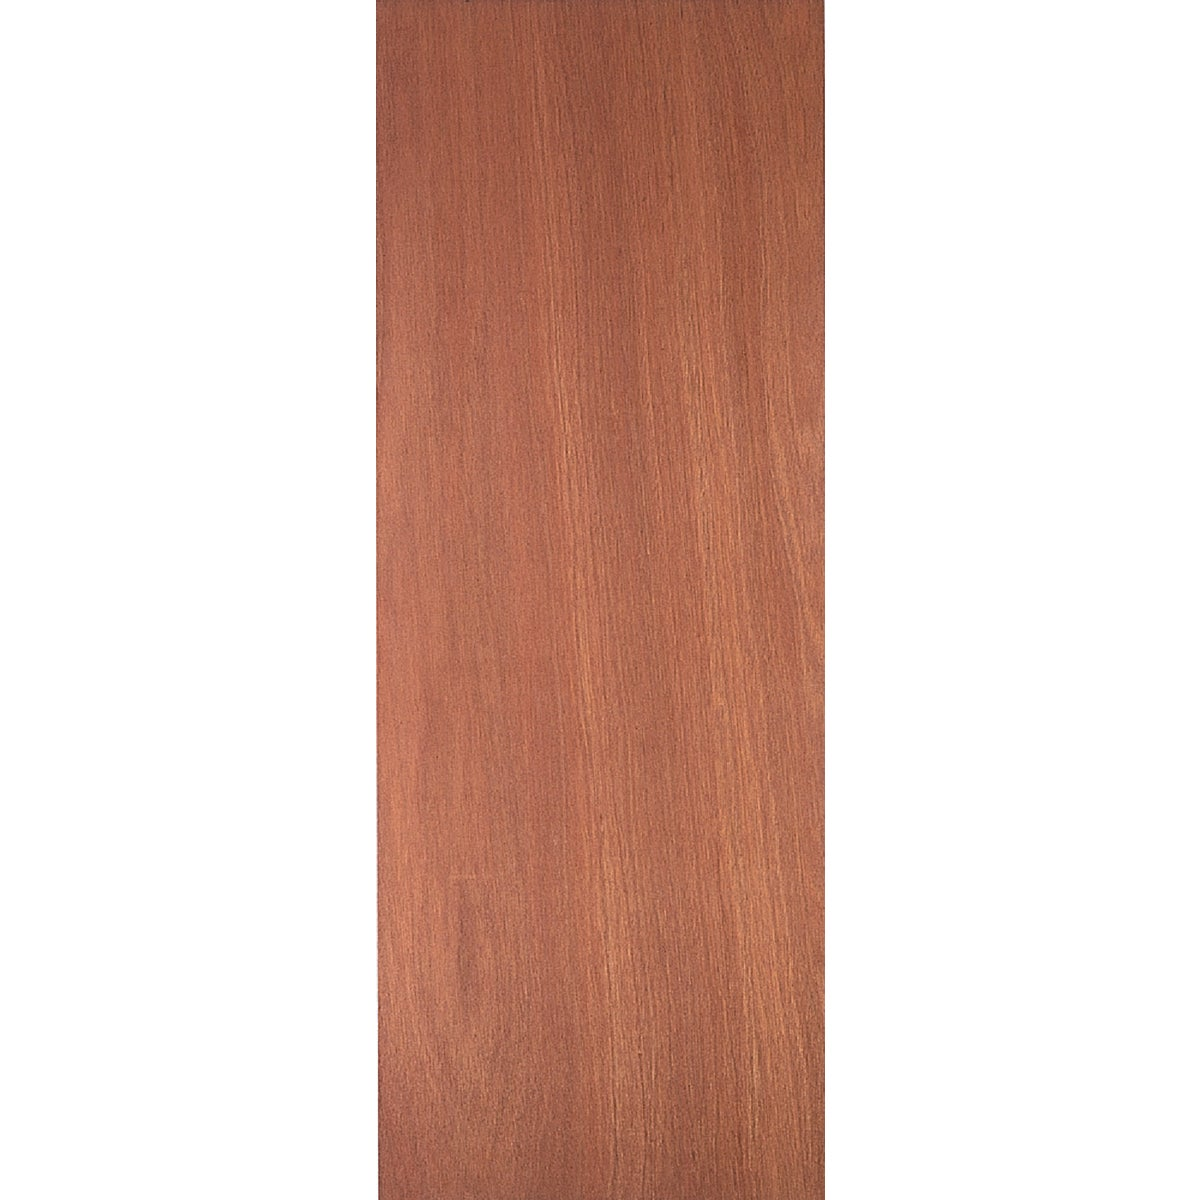 "1/6 1-3/8"" LAUAN HC DOOR -  by Masonite"